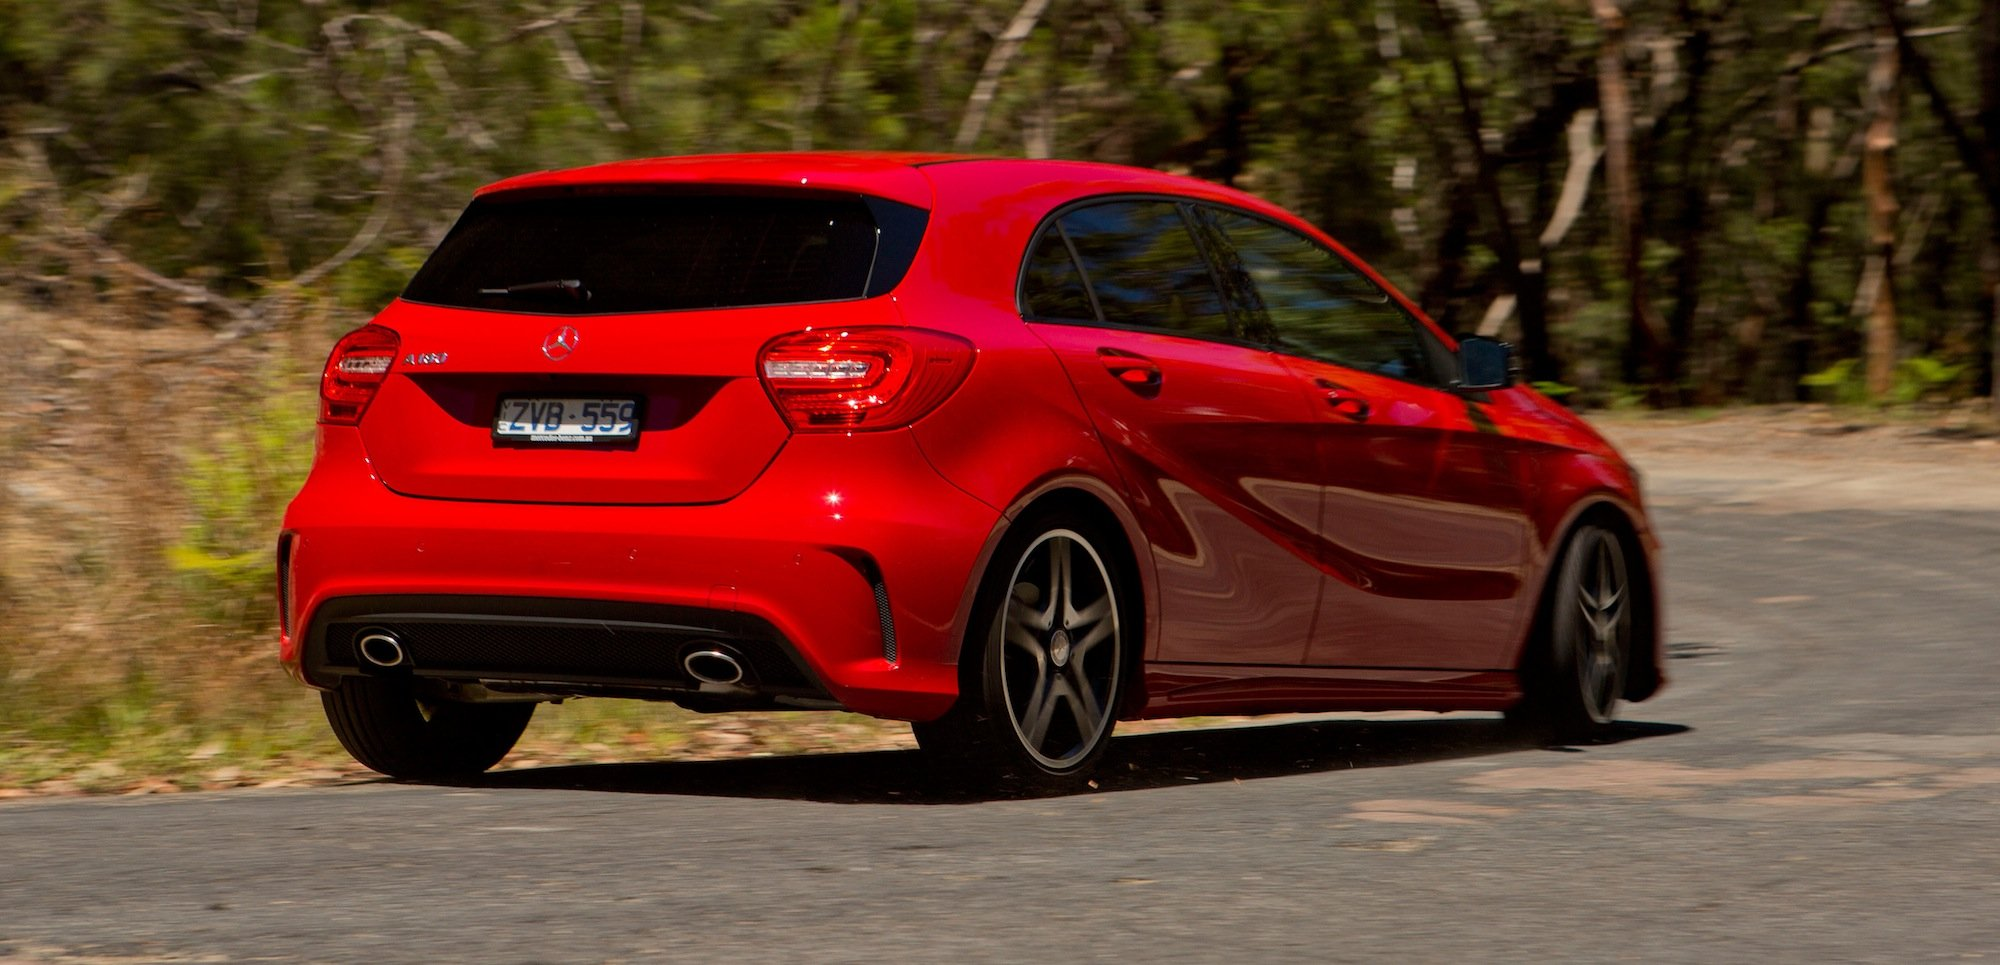 Mercedes benz a class review a180 caradvice for Mercedes benz mercedes benz mercedes benz